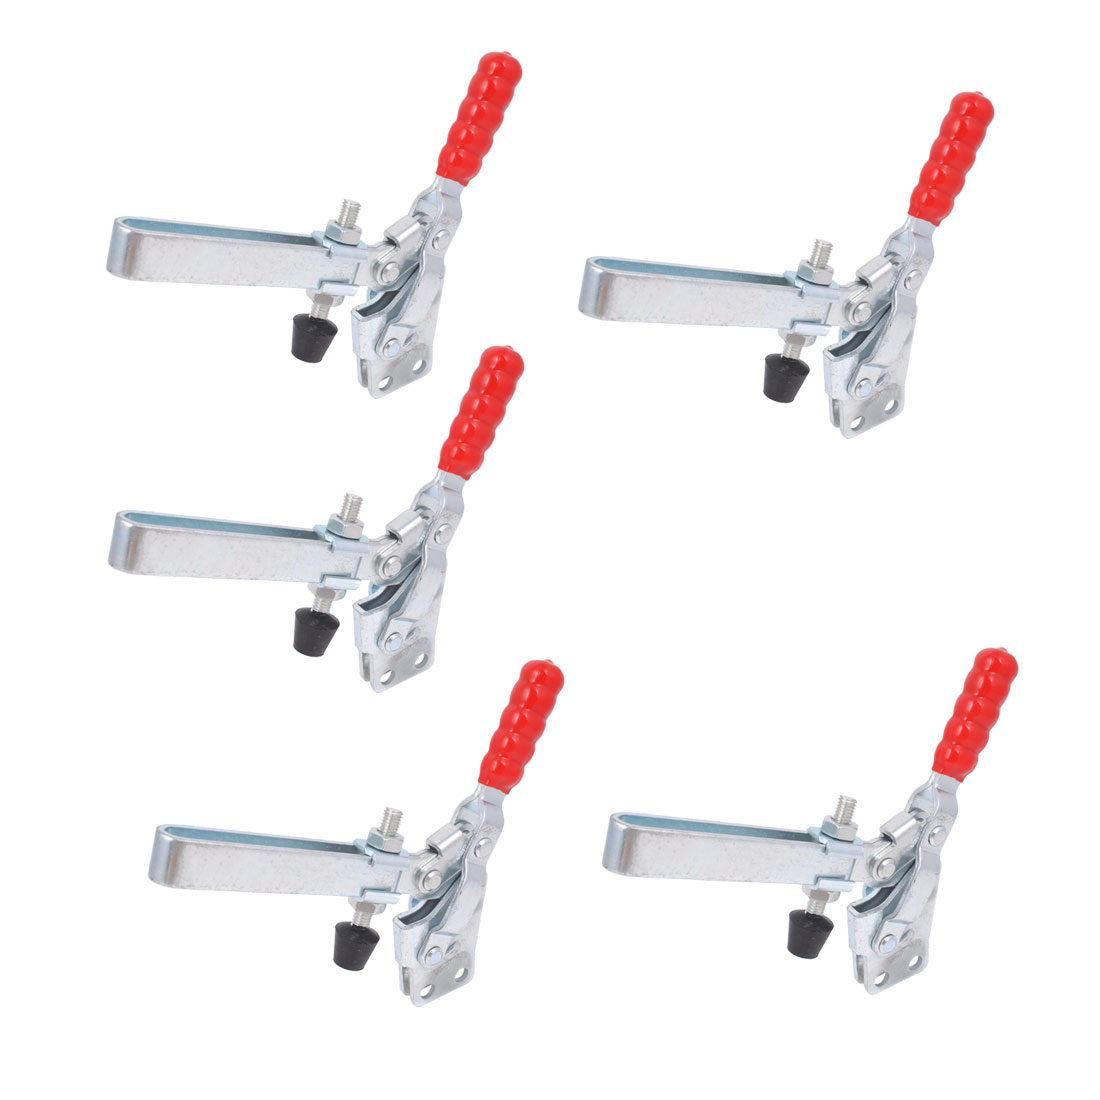 5PCS Quickly Holding U Shaped Bar Vertical Toggle Clamp 227Kg 12137